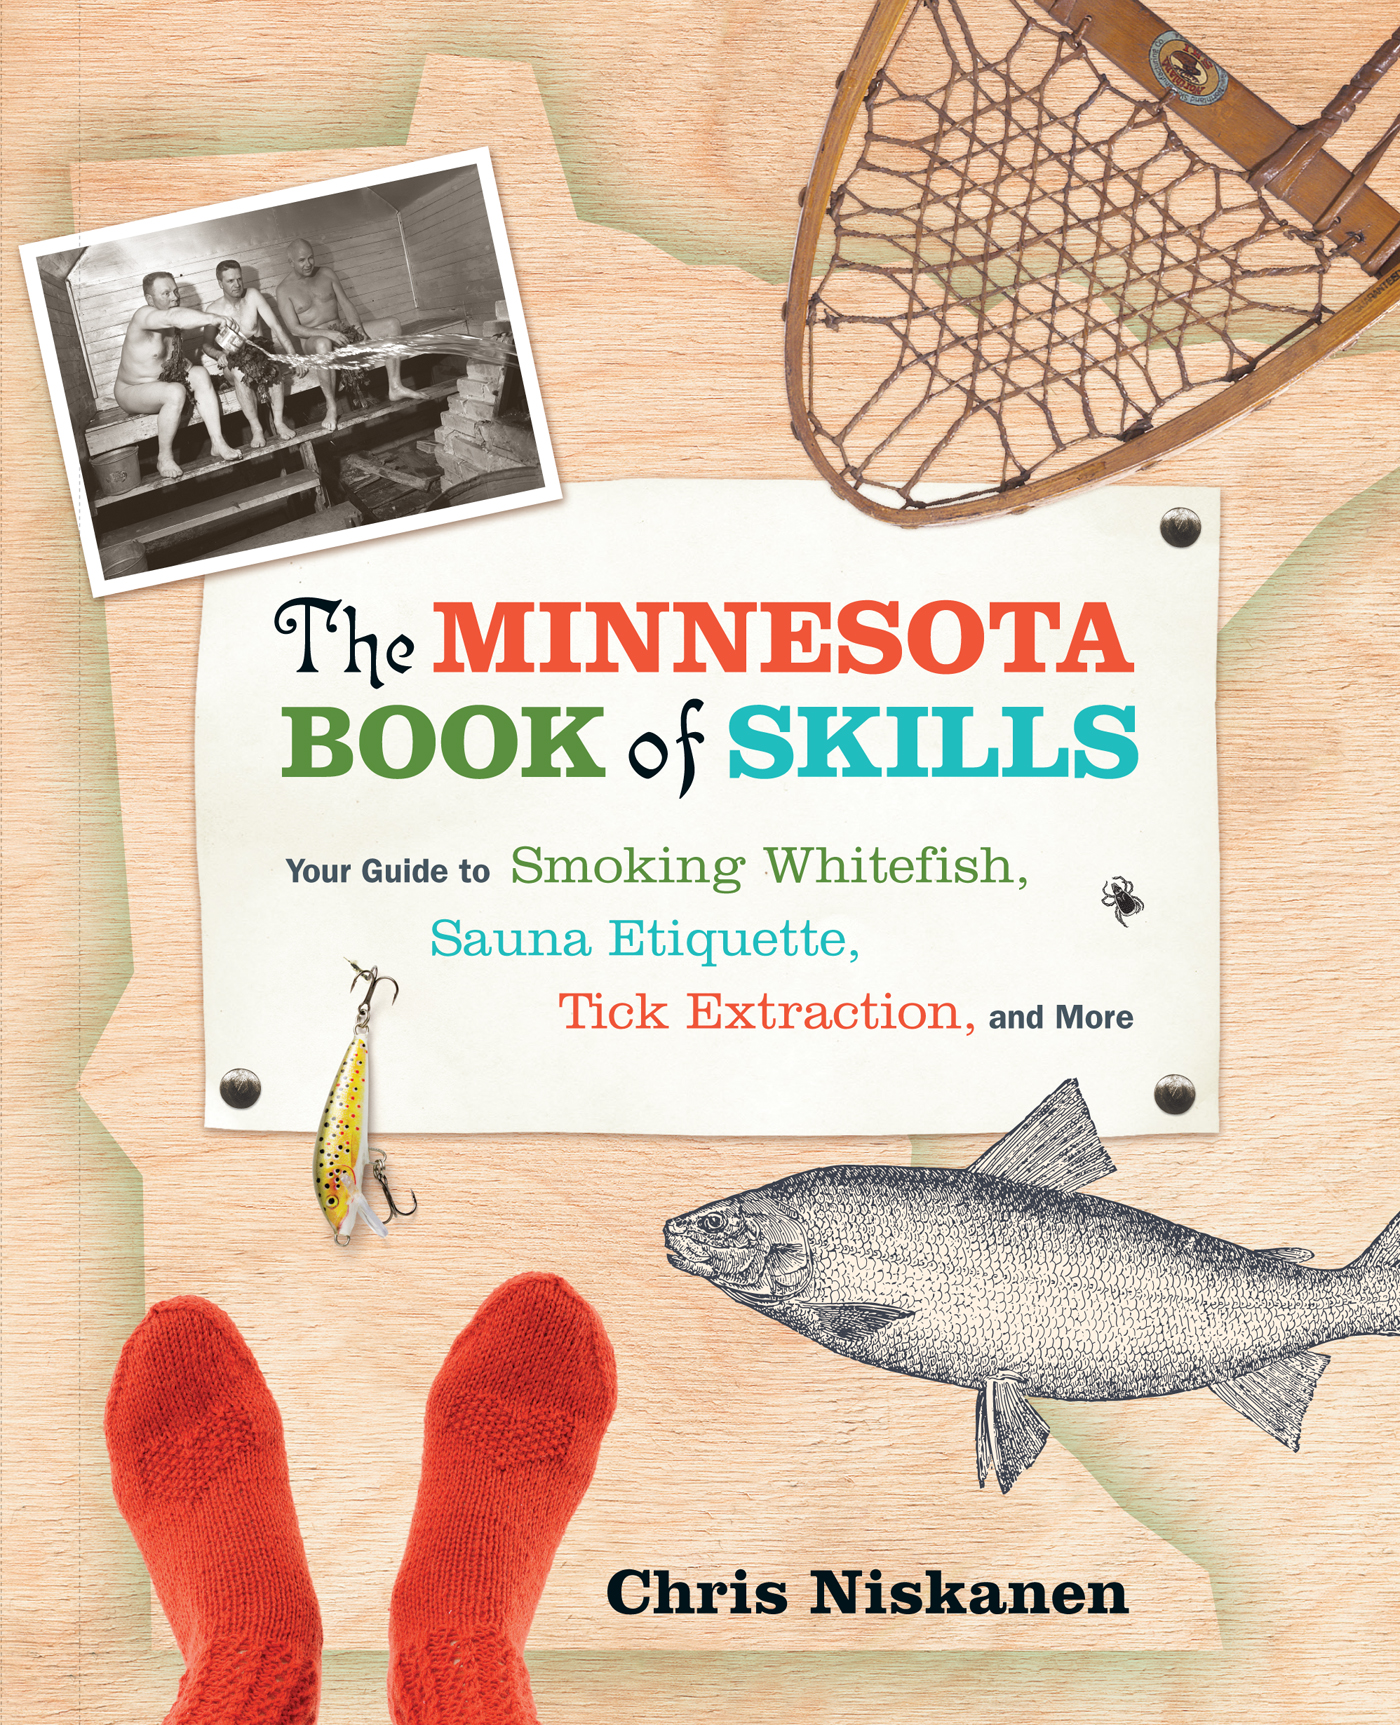 The Minnesota Book of Skills: Your Guide to Smoking Whitefish, Sauna Etiquette, Tick Extraction, and More